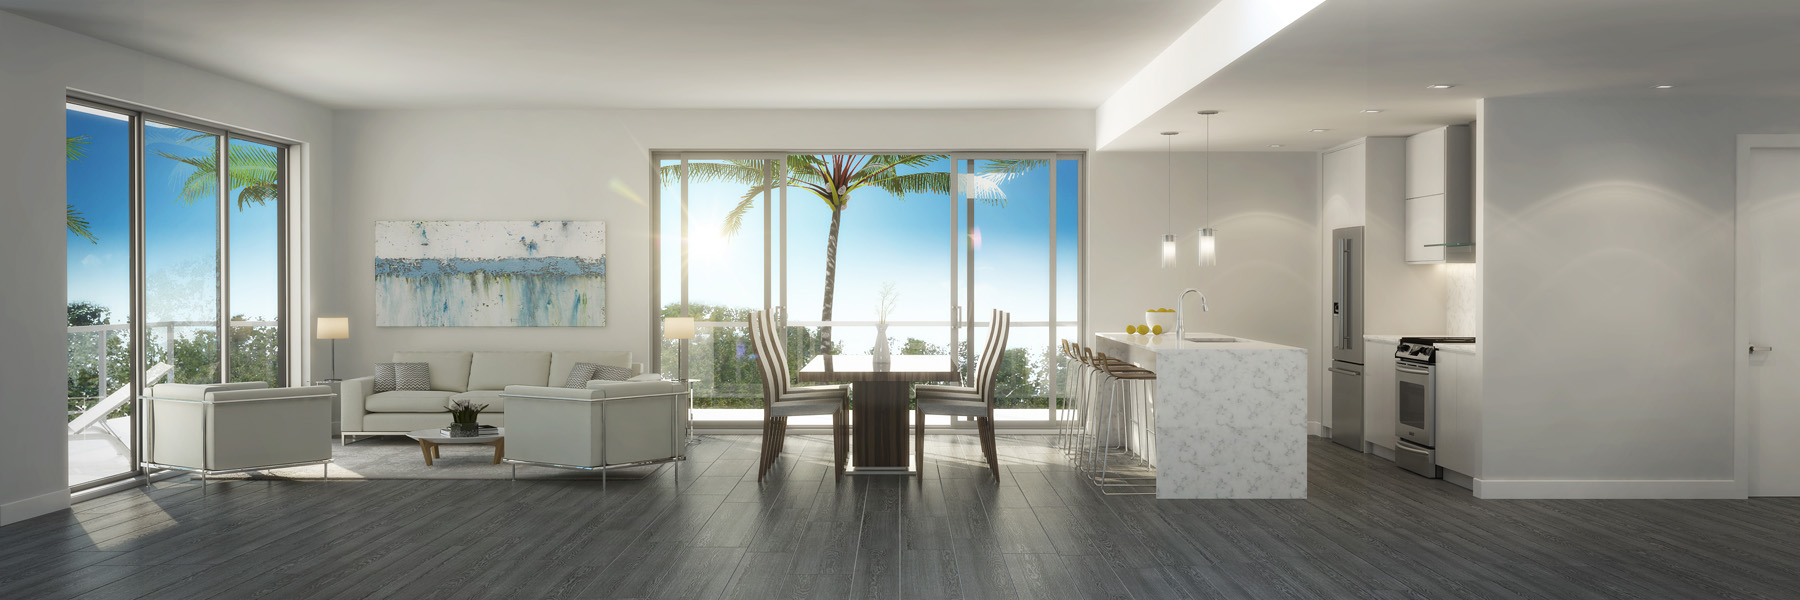 la-mer-living-dining-area-optimize